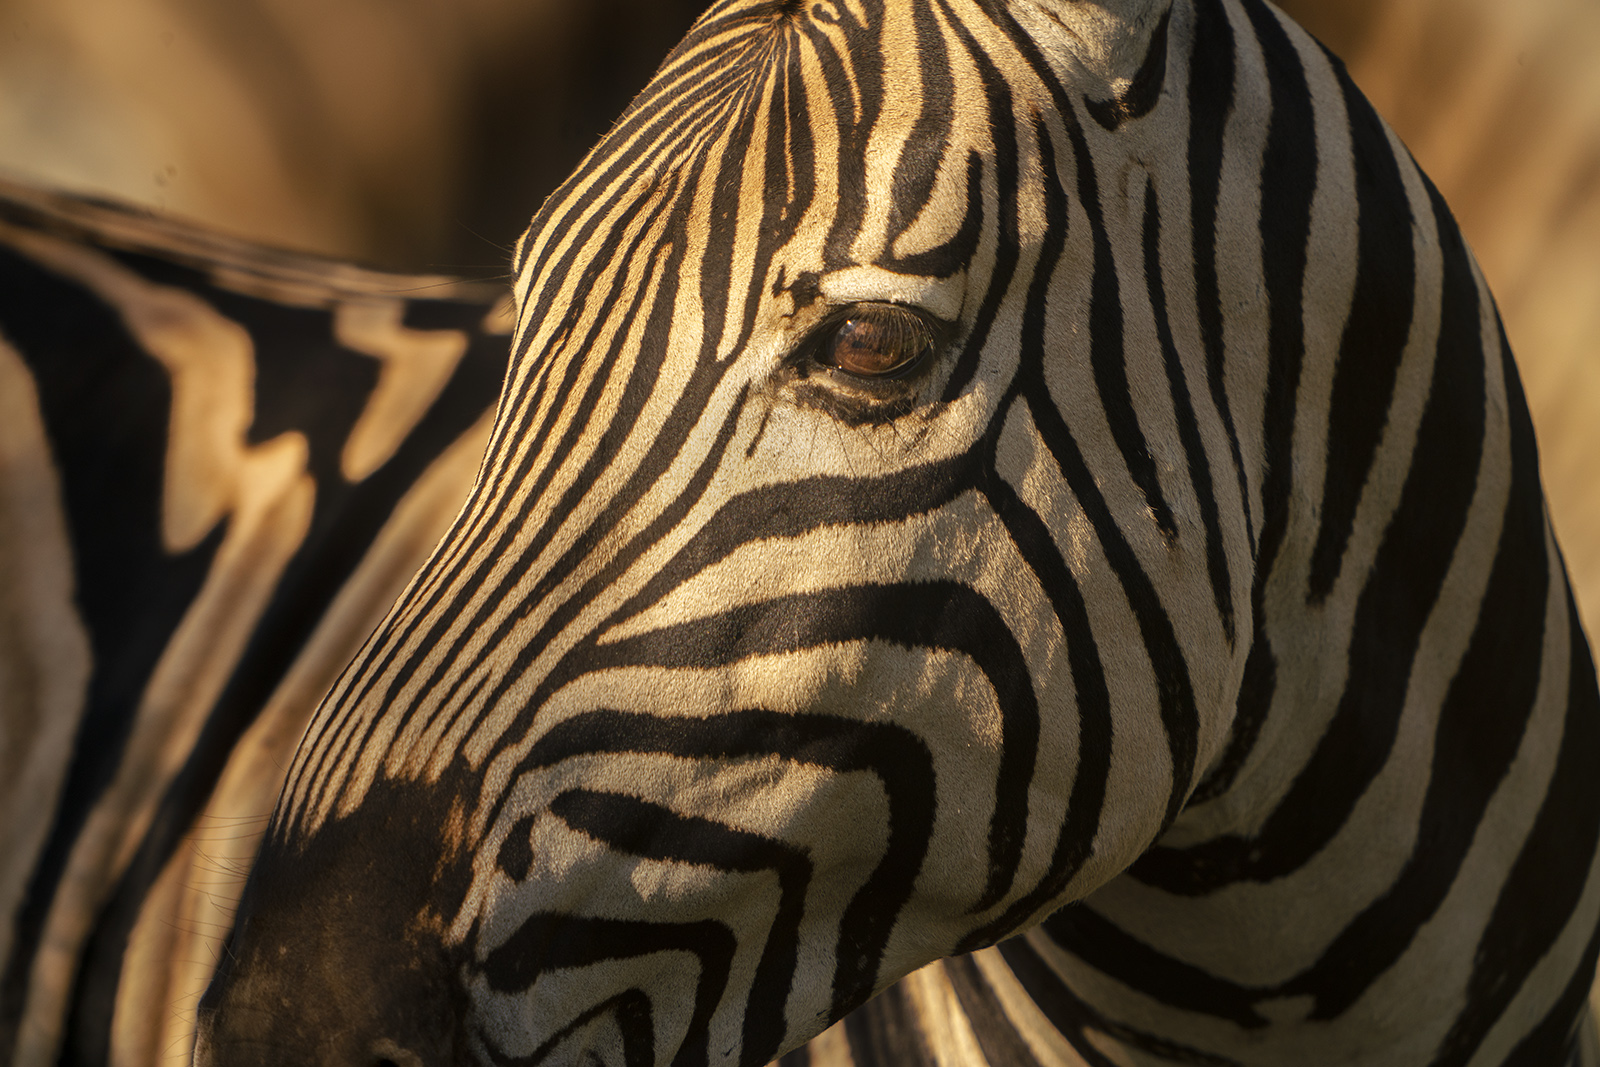 The unmistakeable stripes of the zebra.